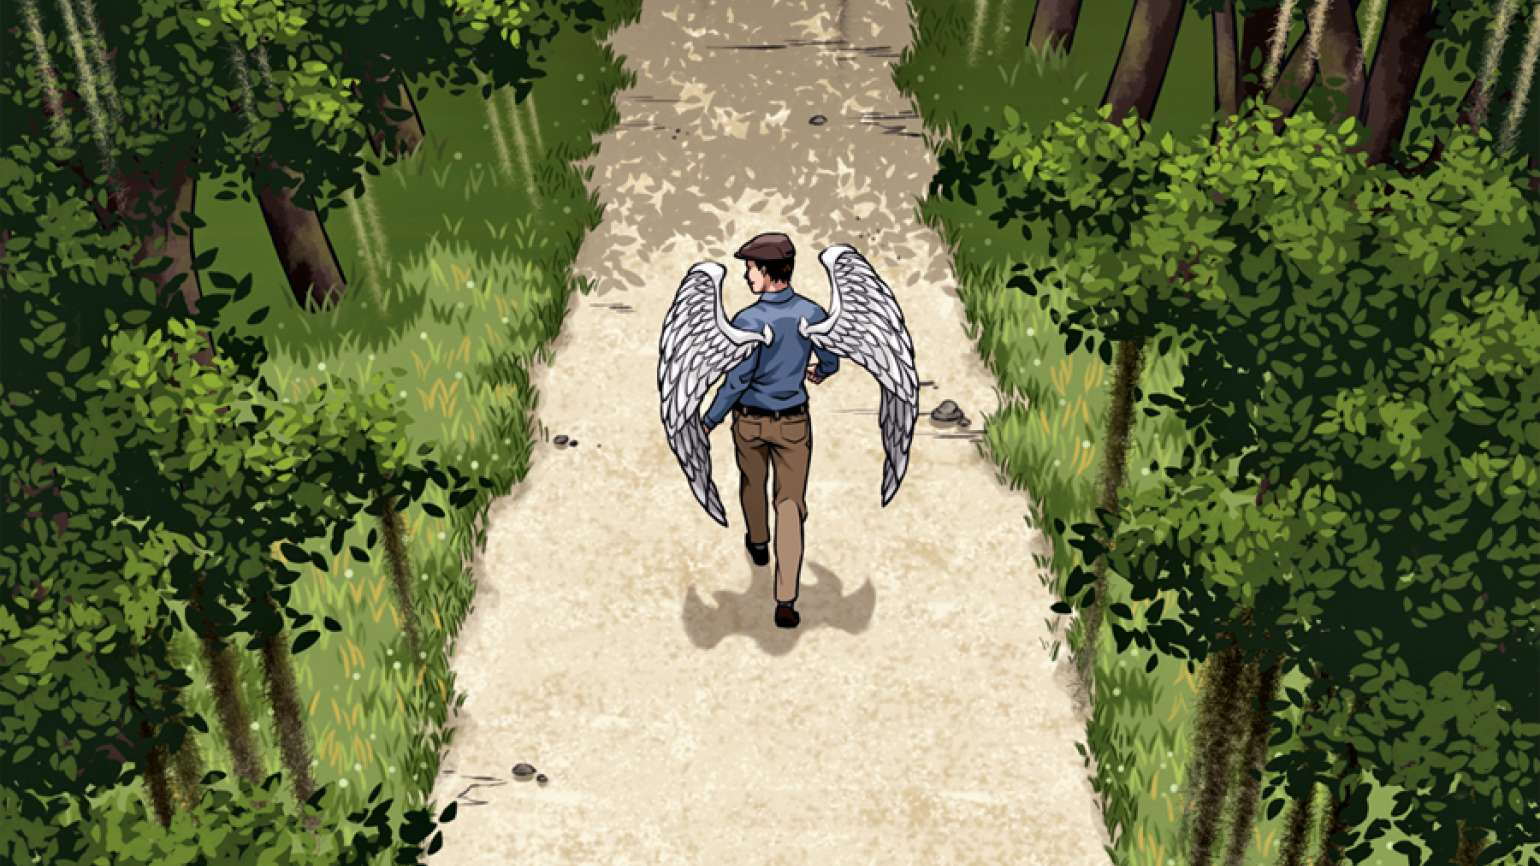 A young male angel walks along a wooded path.